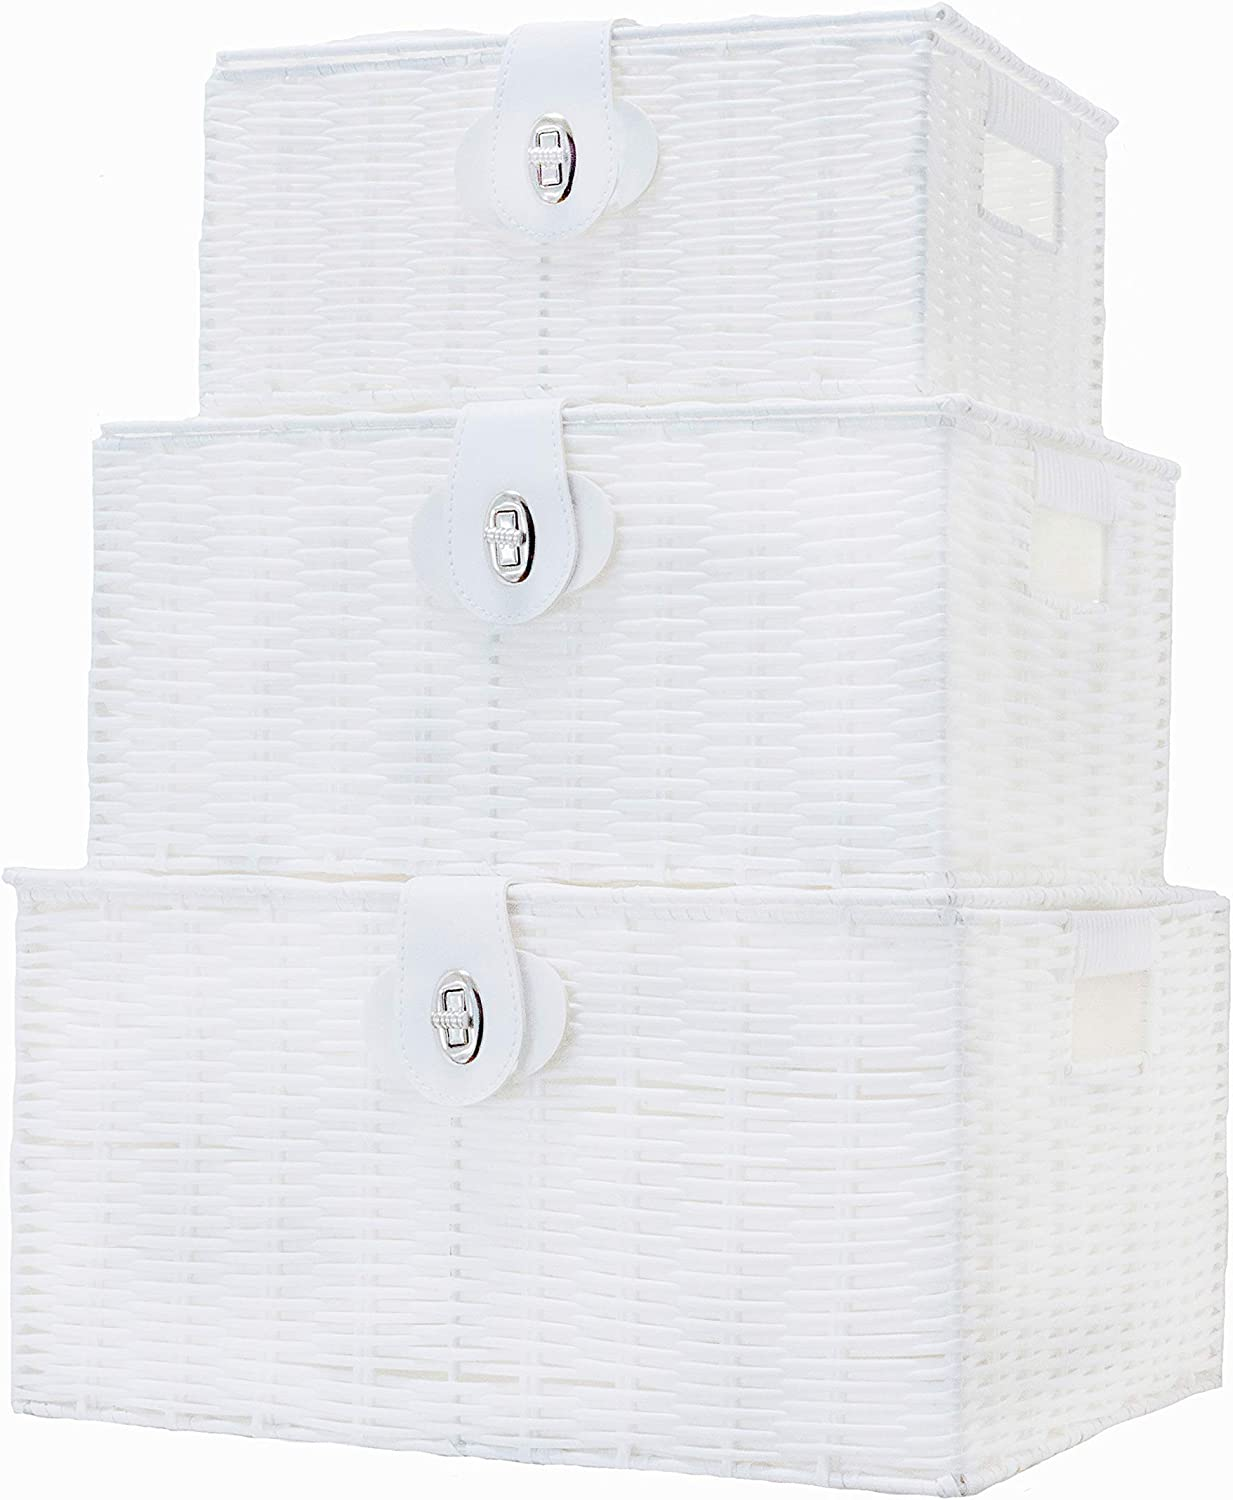 Vencier Set of 3 Resin Woven Storage Basket Box with Lid & Lock, White, Large, Medium, Small (White)